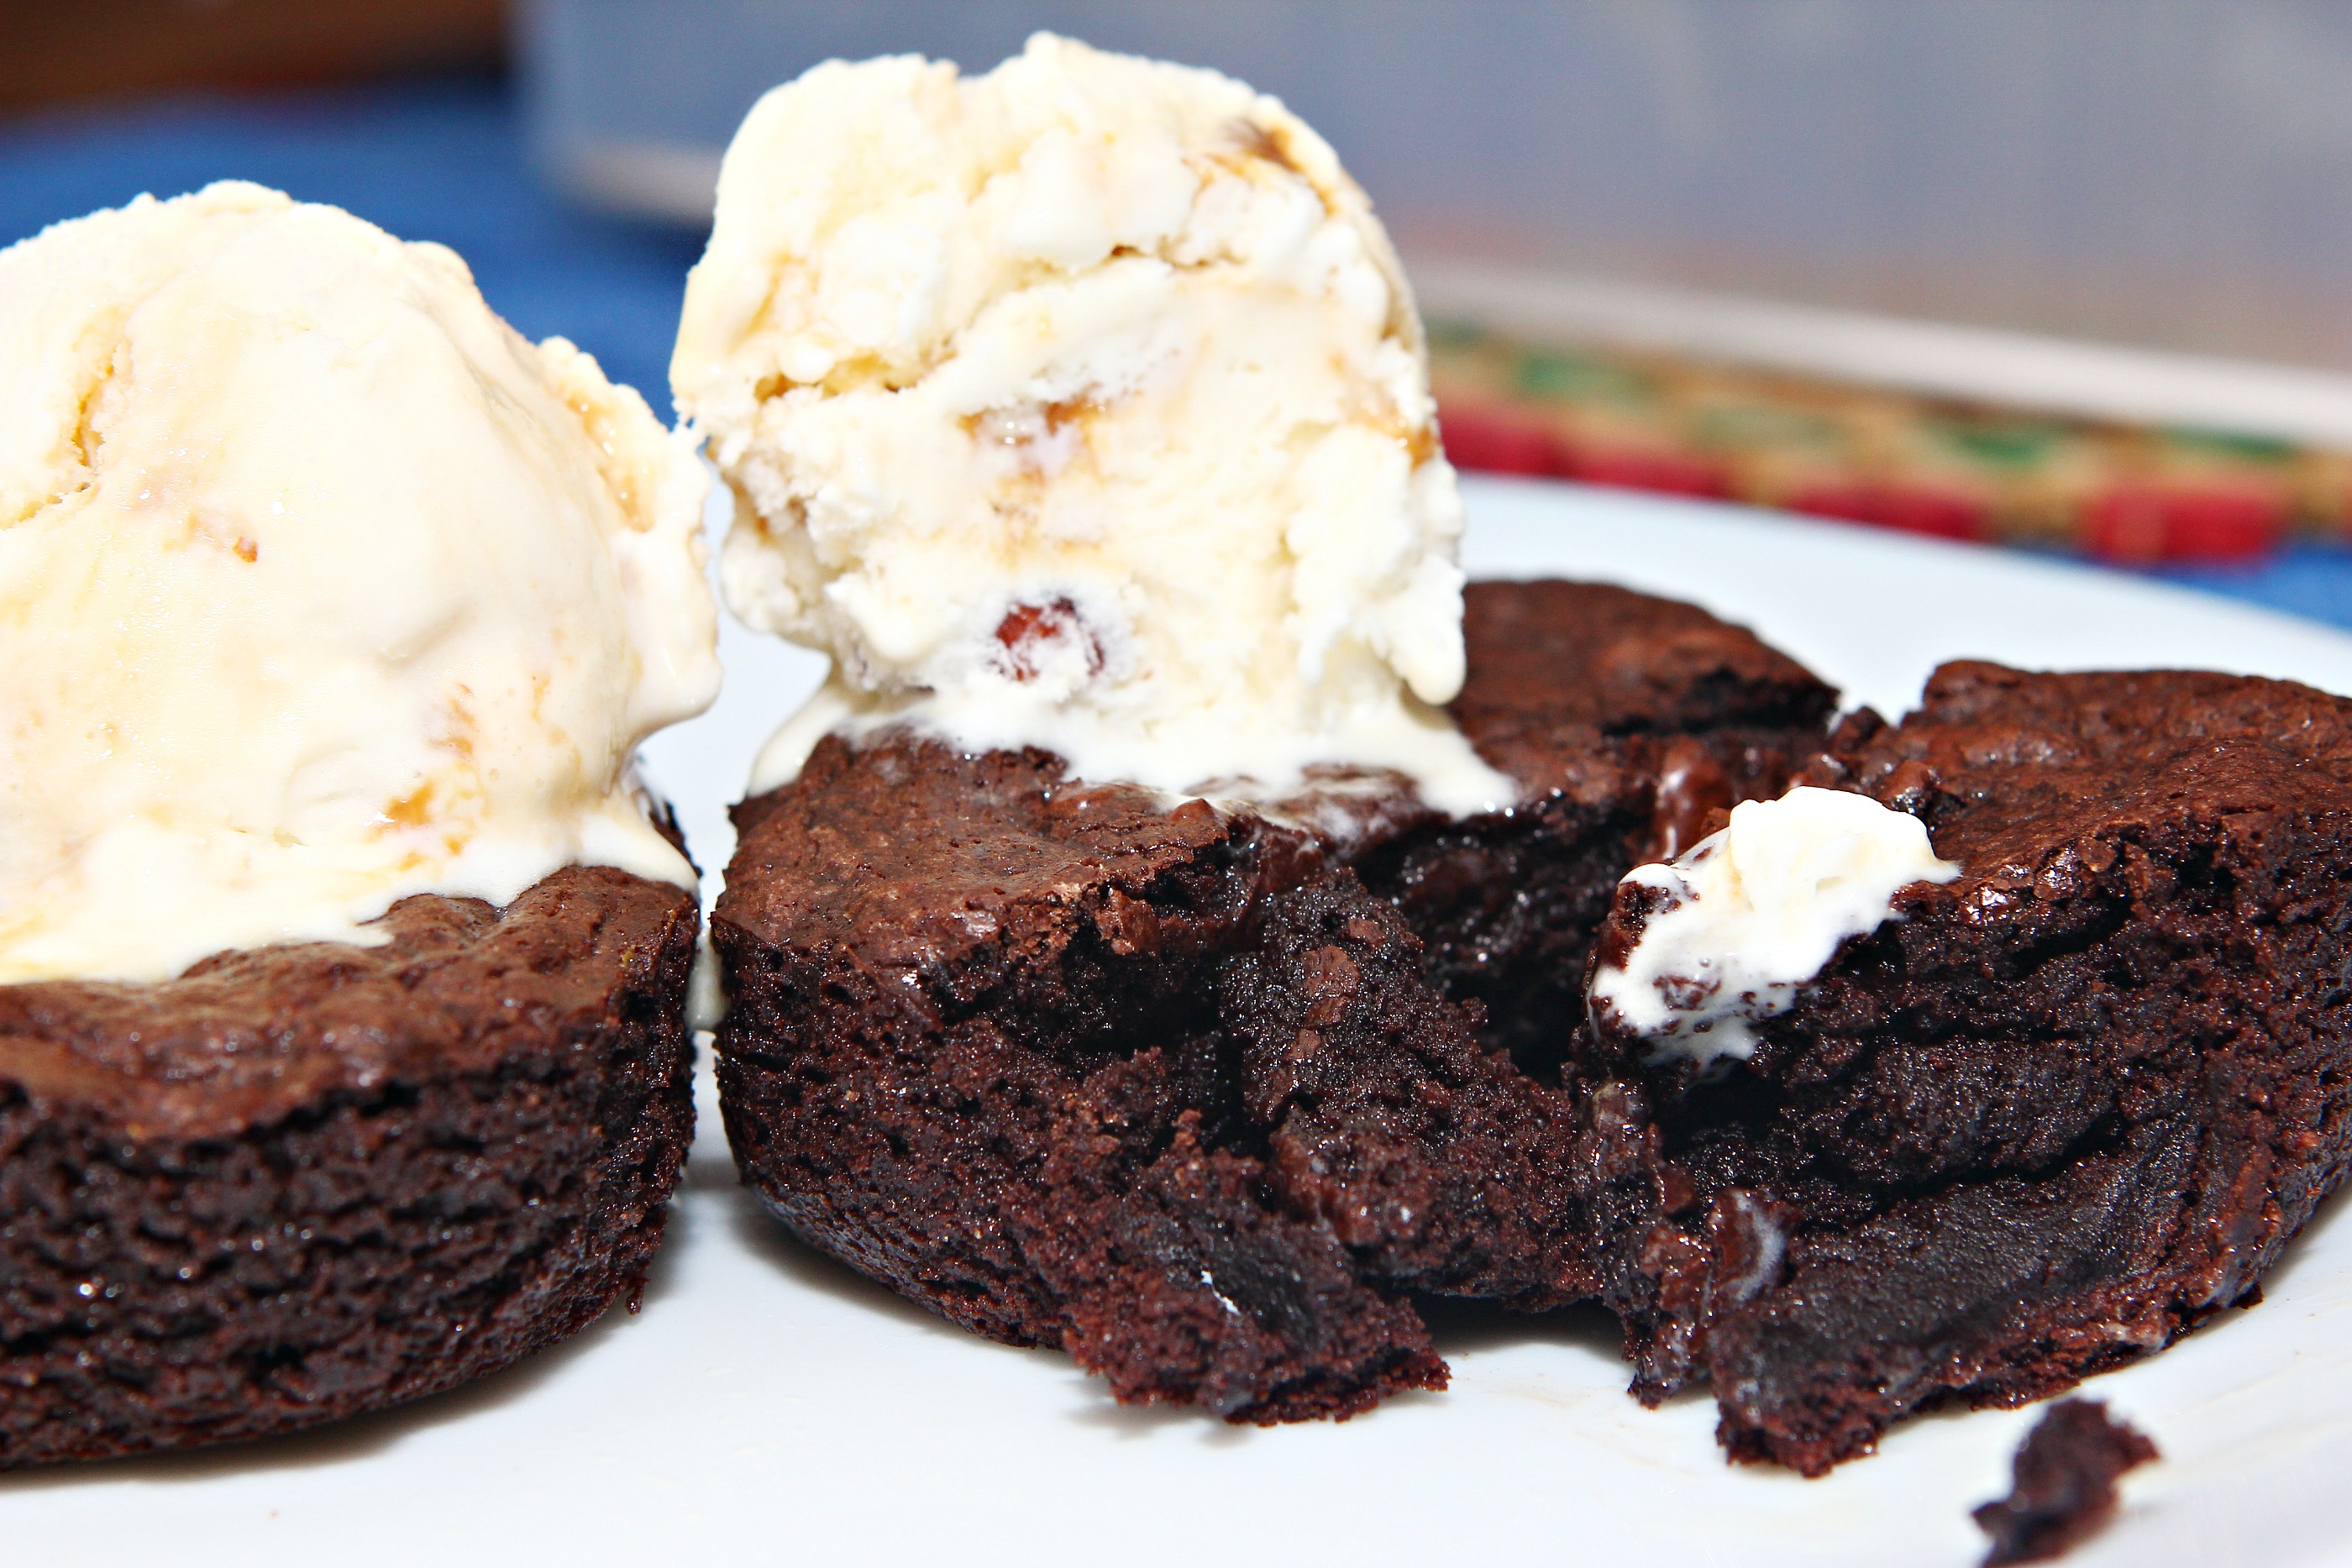 ... Warm Brownie Recipe Perfect With Vanilla Ice Cream | Marryl Crafts